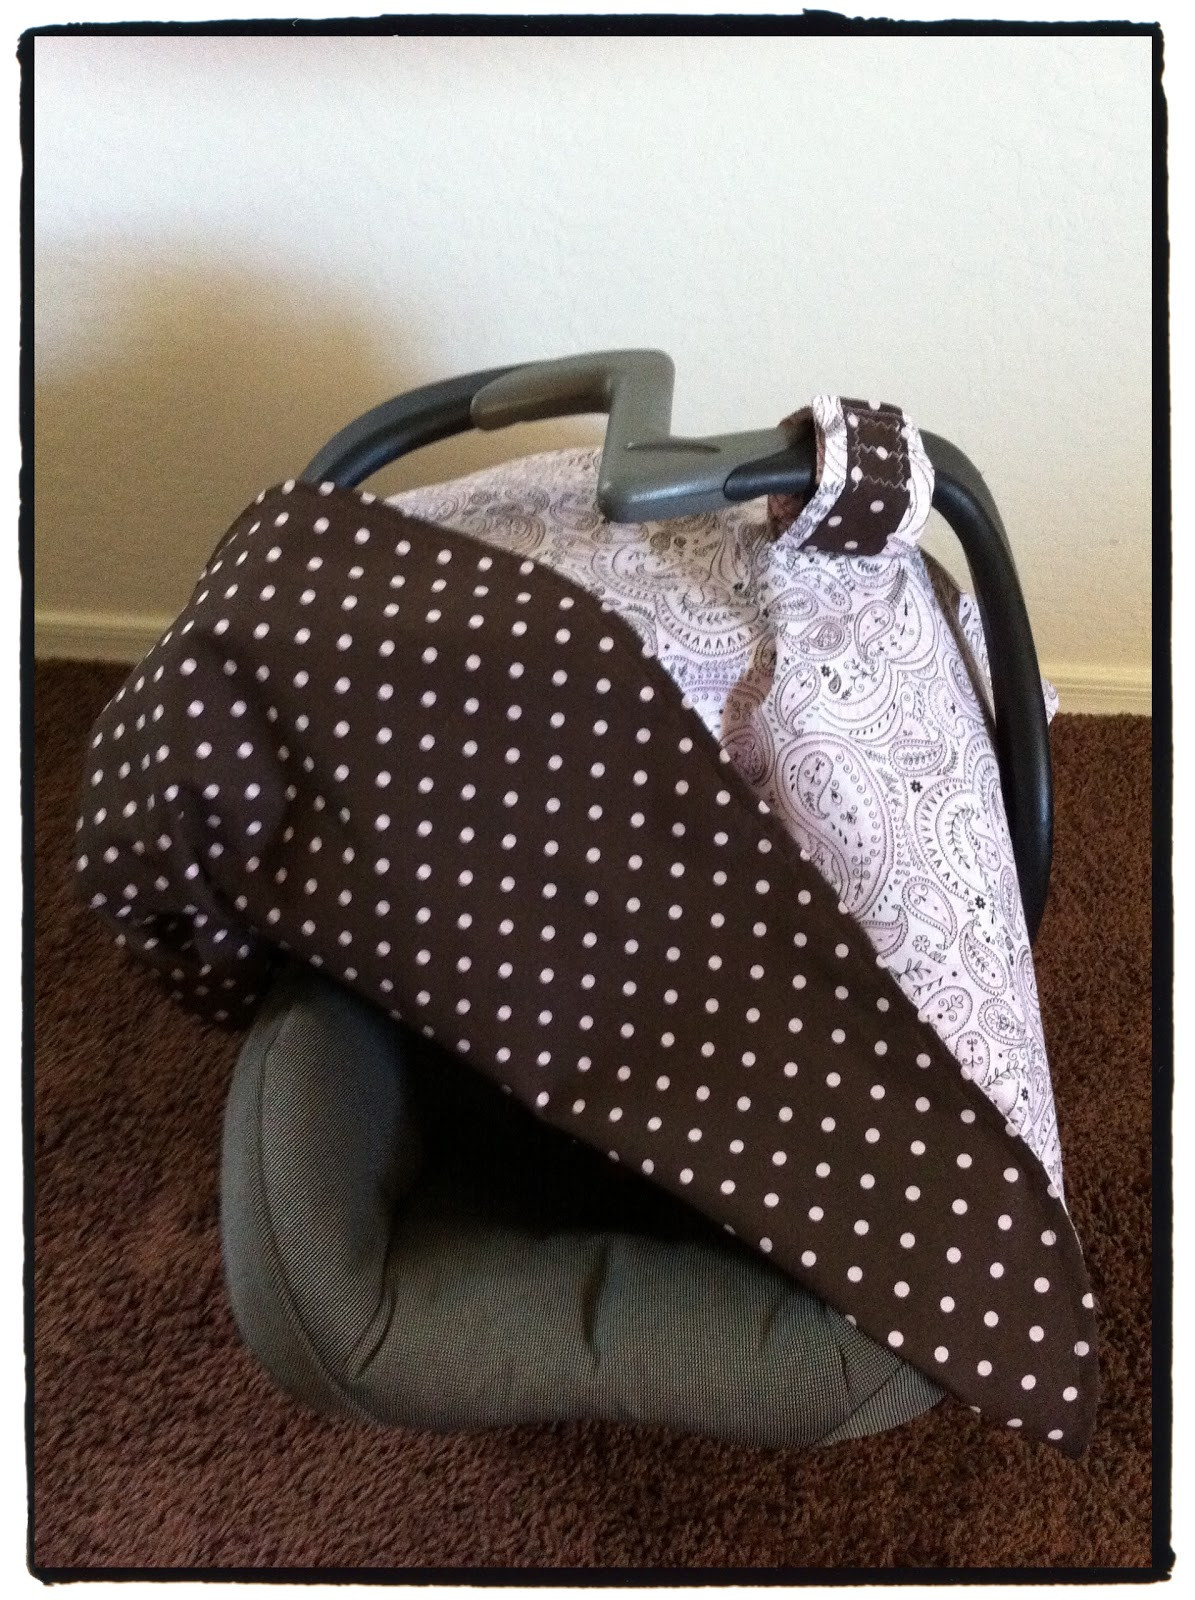 Best ideas about DIY Baby Car Seat Cover . Save or Pin Mo Momma Sewing DIY Car Seat Cover Canopy Tutorial Now.